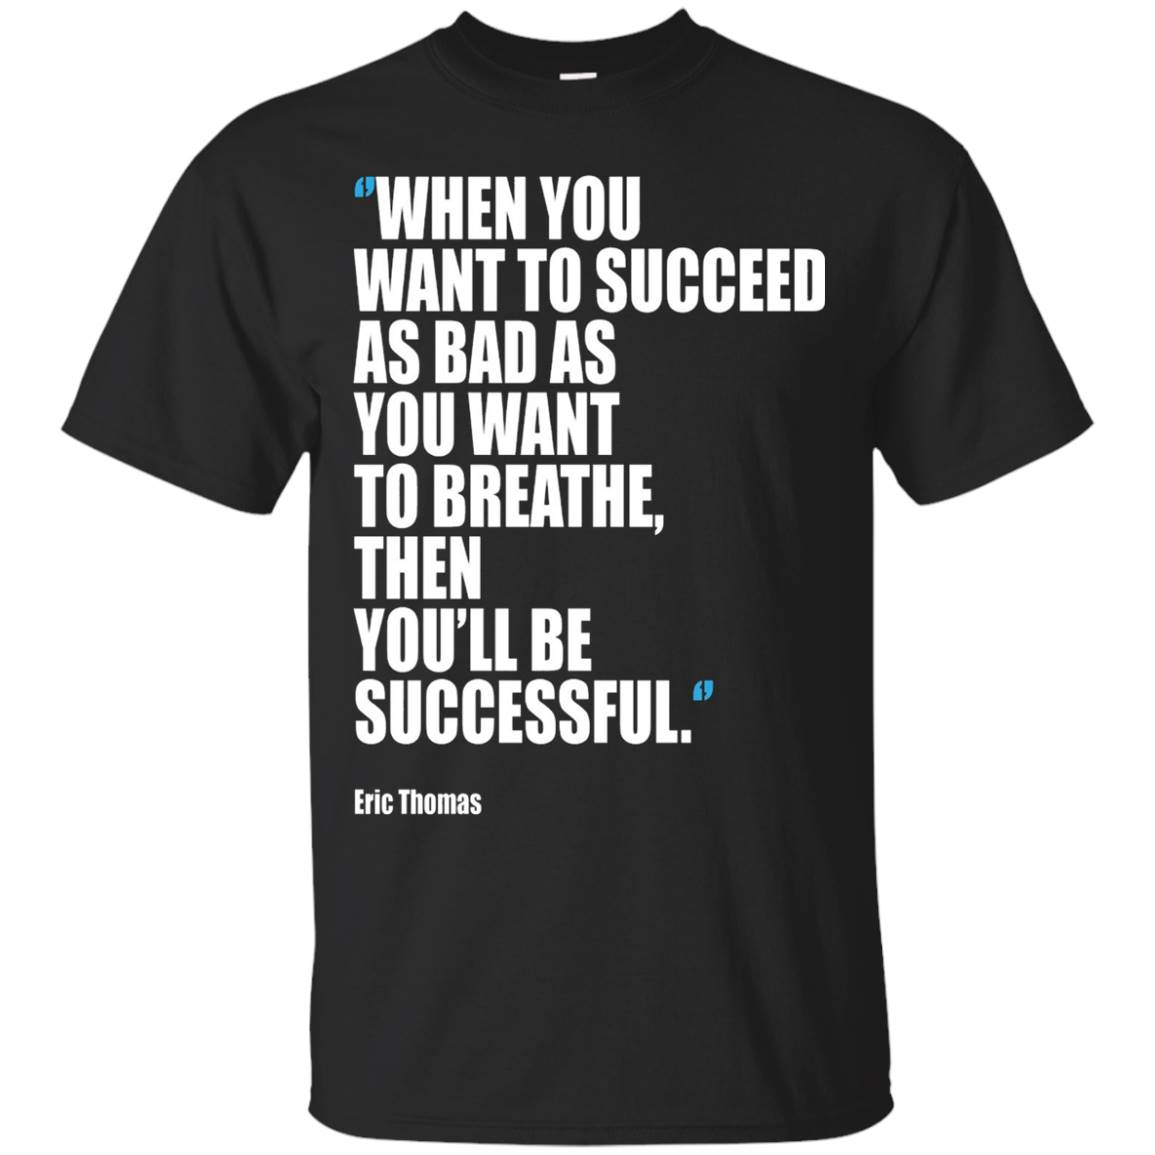 Succeed As Bad As You Want To Breathe T-Shirt